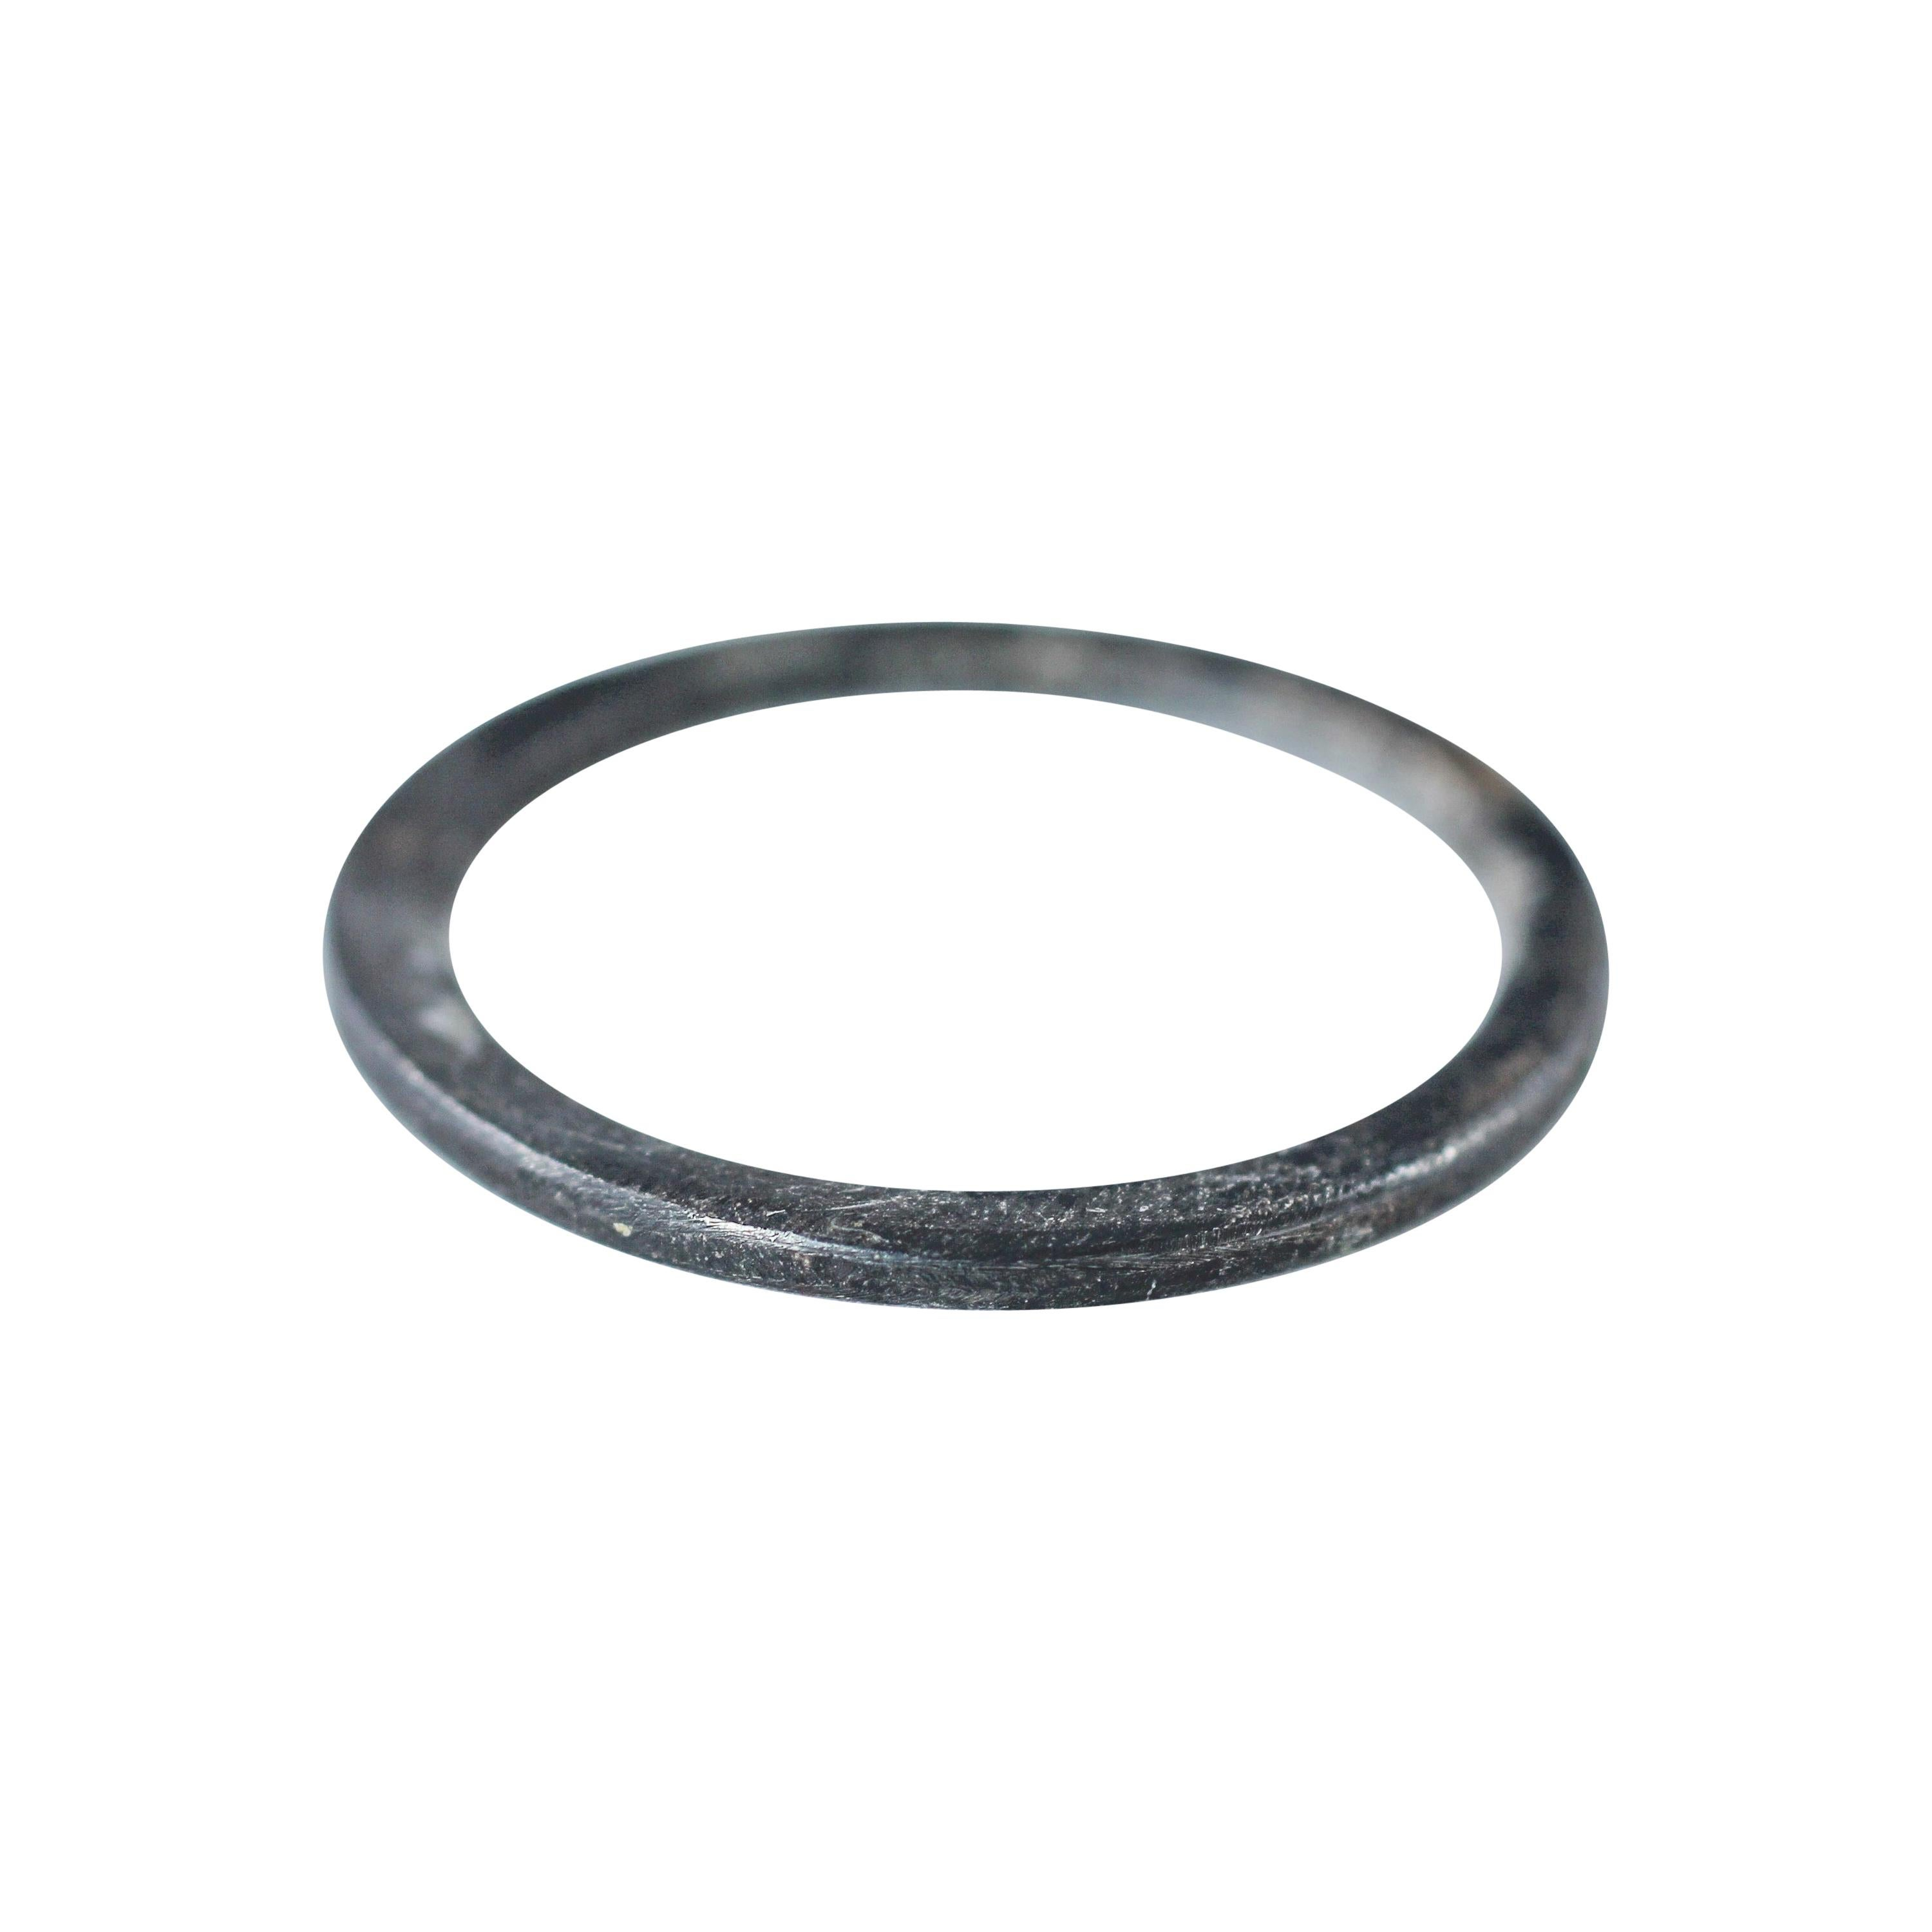 Band Ring in Oxidized Sterling Silver Medium Disk Stacking Fashion Contemporary